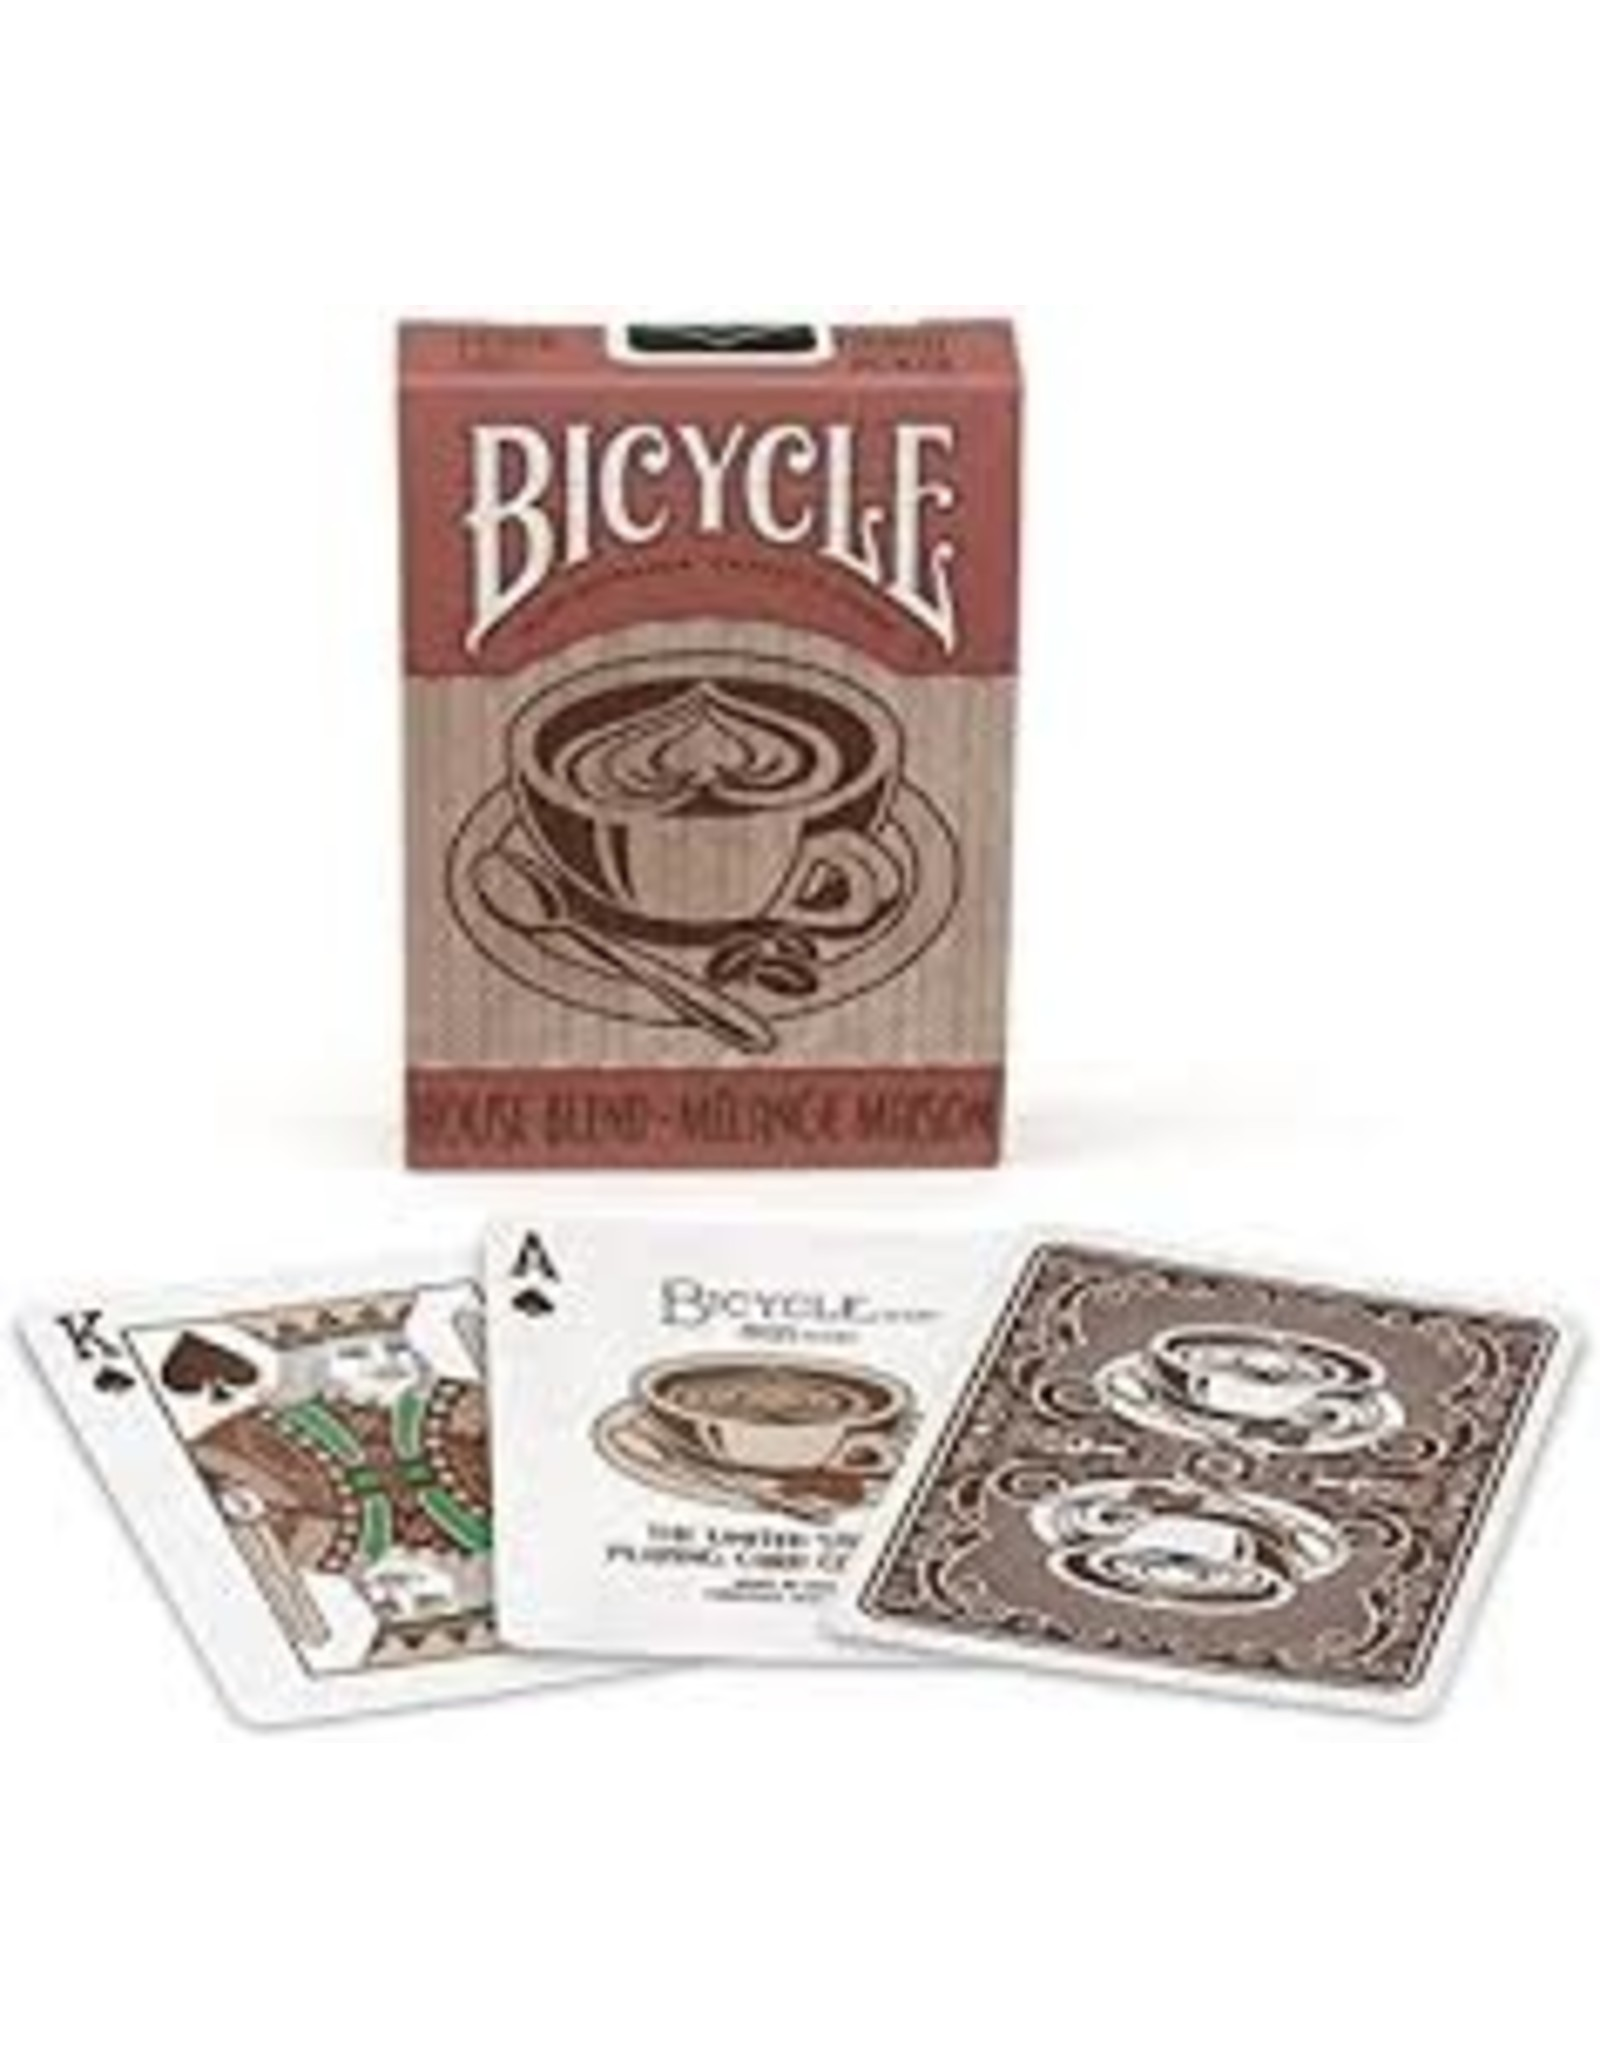 US Playing Card Co. Bicycle House Blend